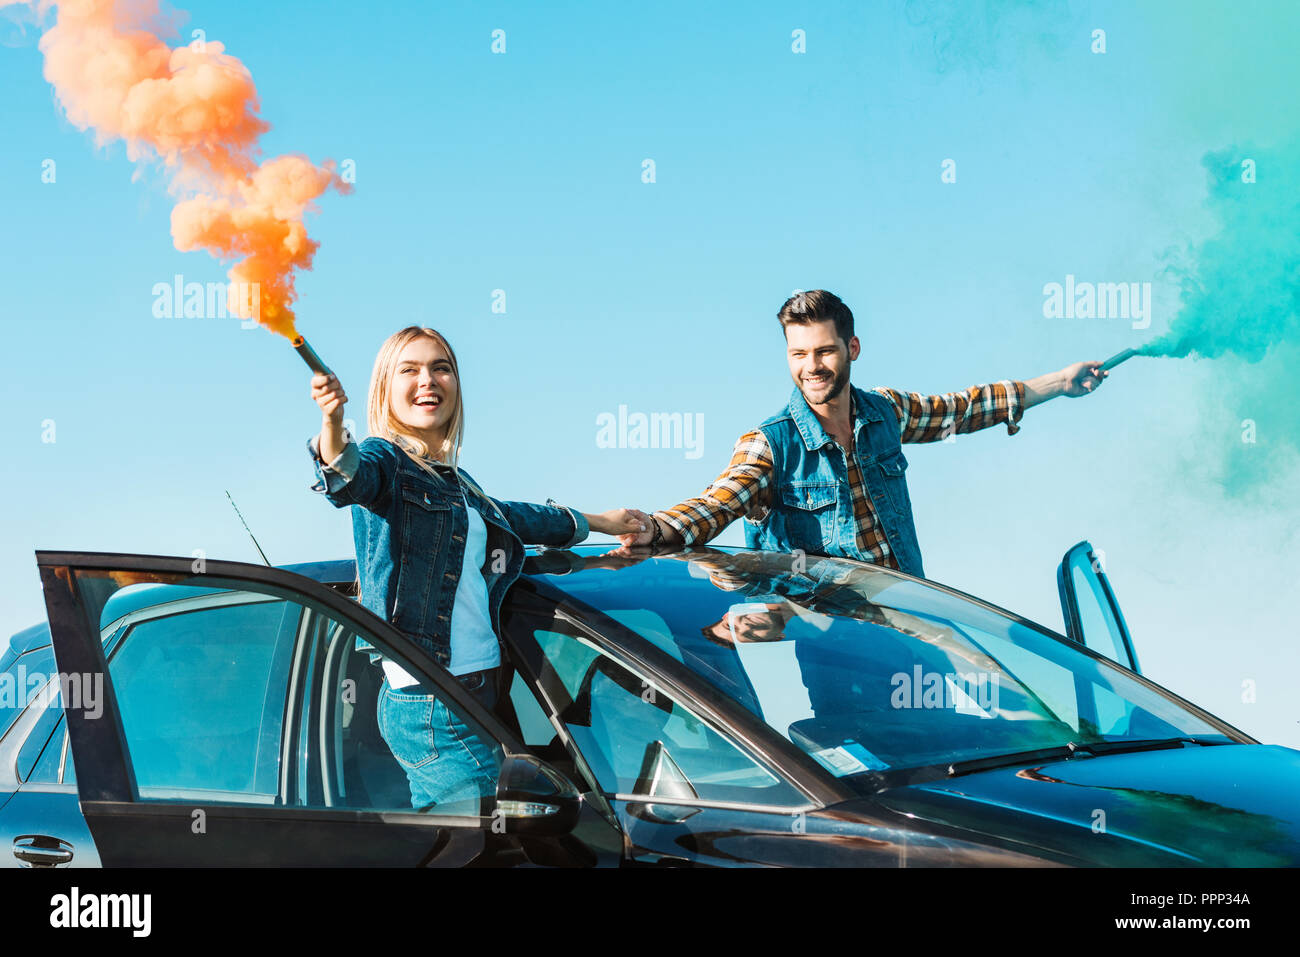 smiling couple standing on car and holding green and orange smoke bombs - Stock Image